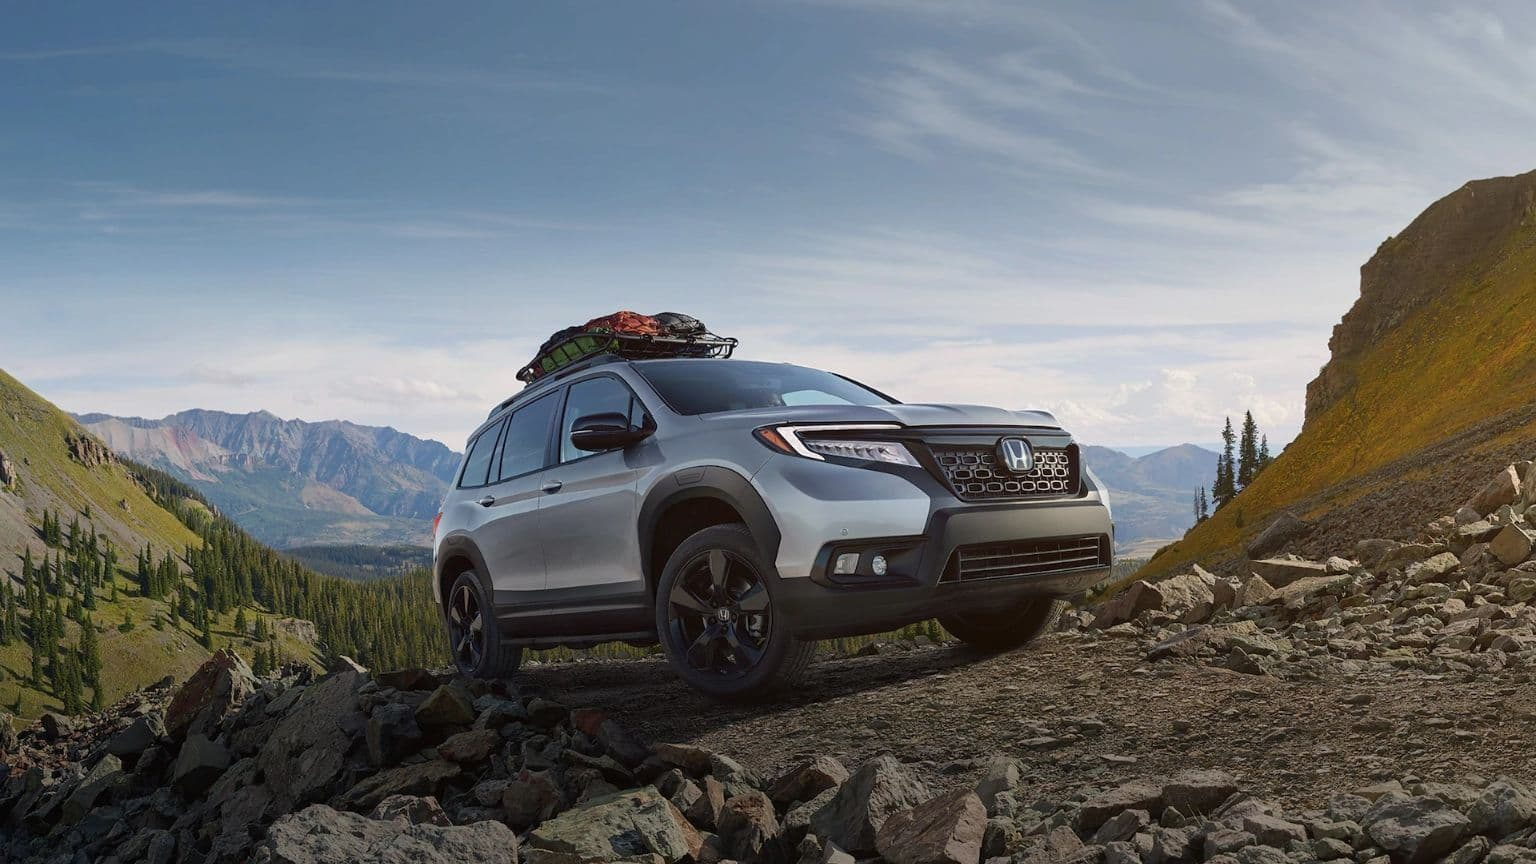 Honda Passport 2020